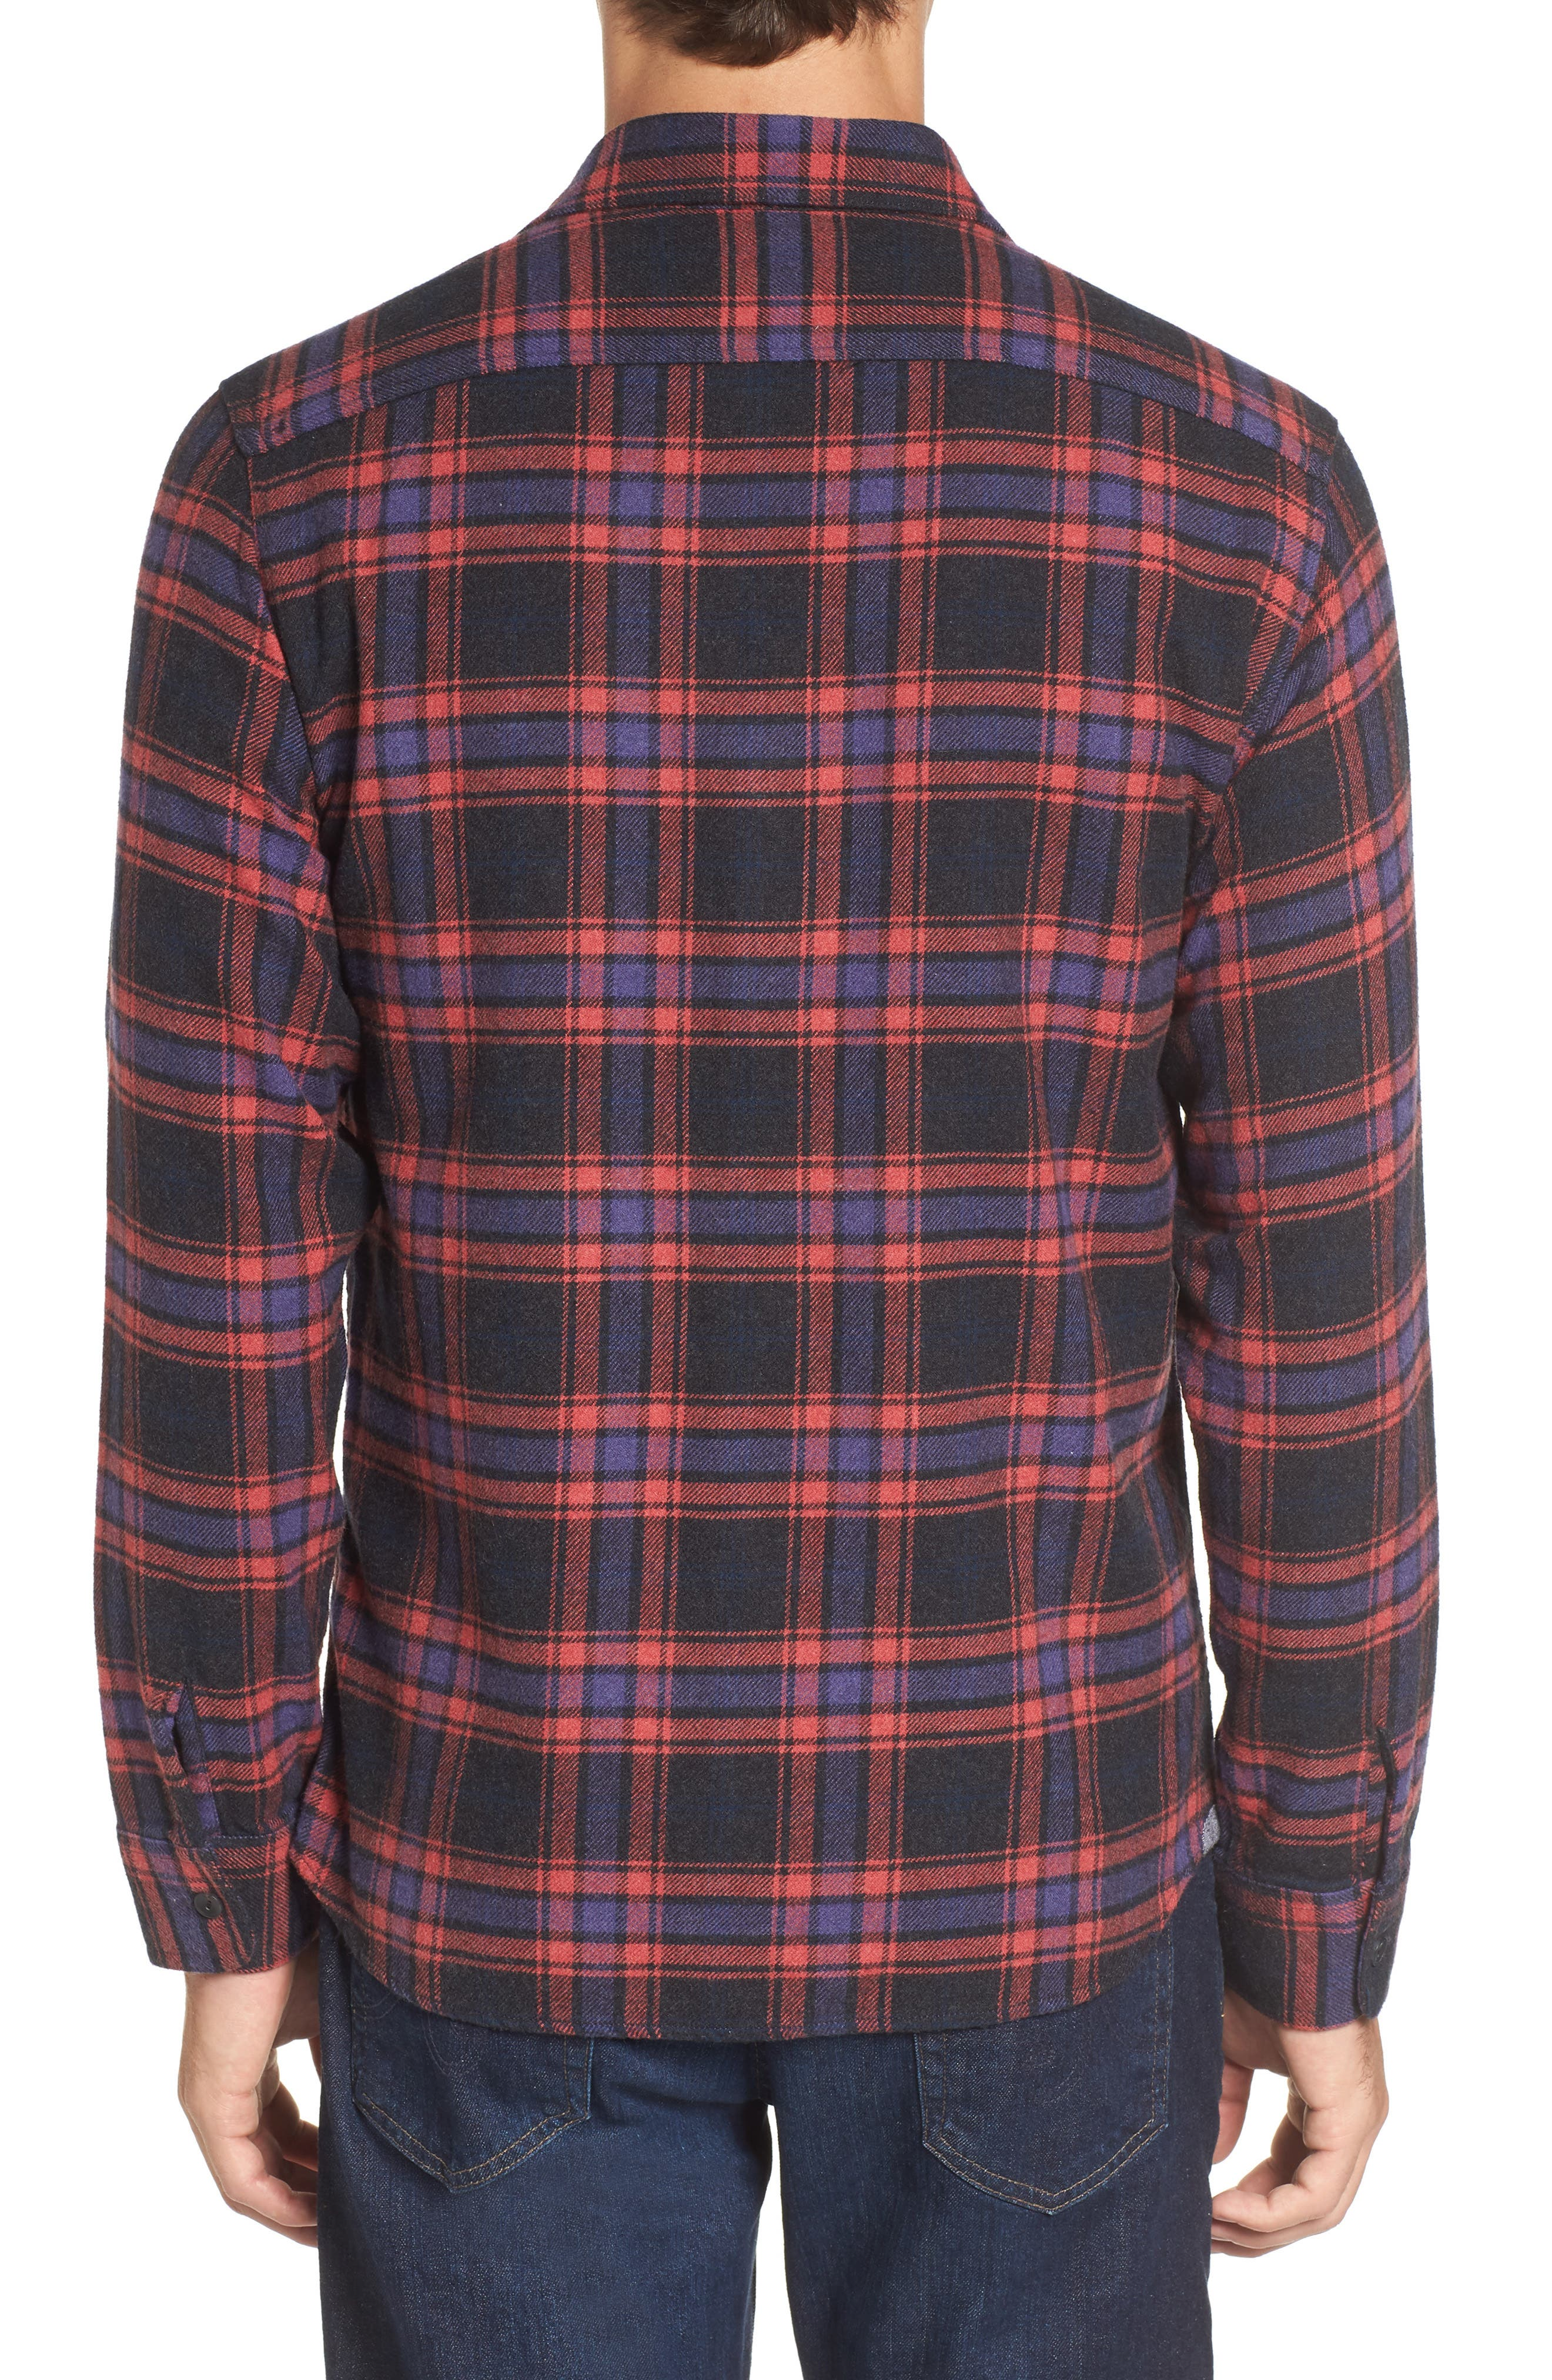 Chaucer Heritage Flannel Shirt,                             Alternate thumbnail 2, color,